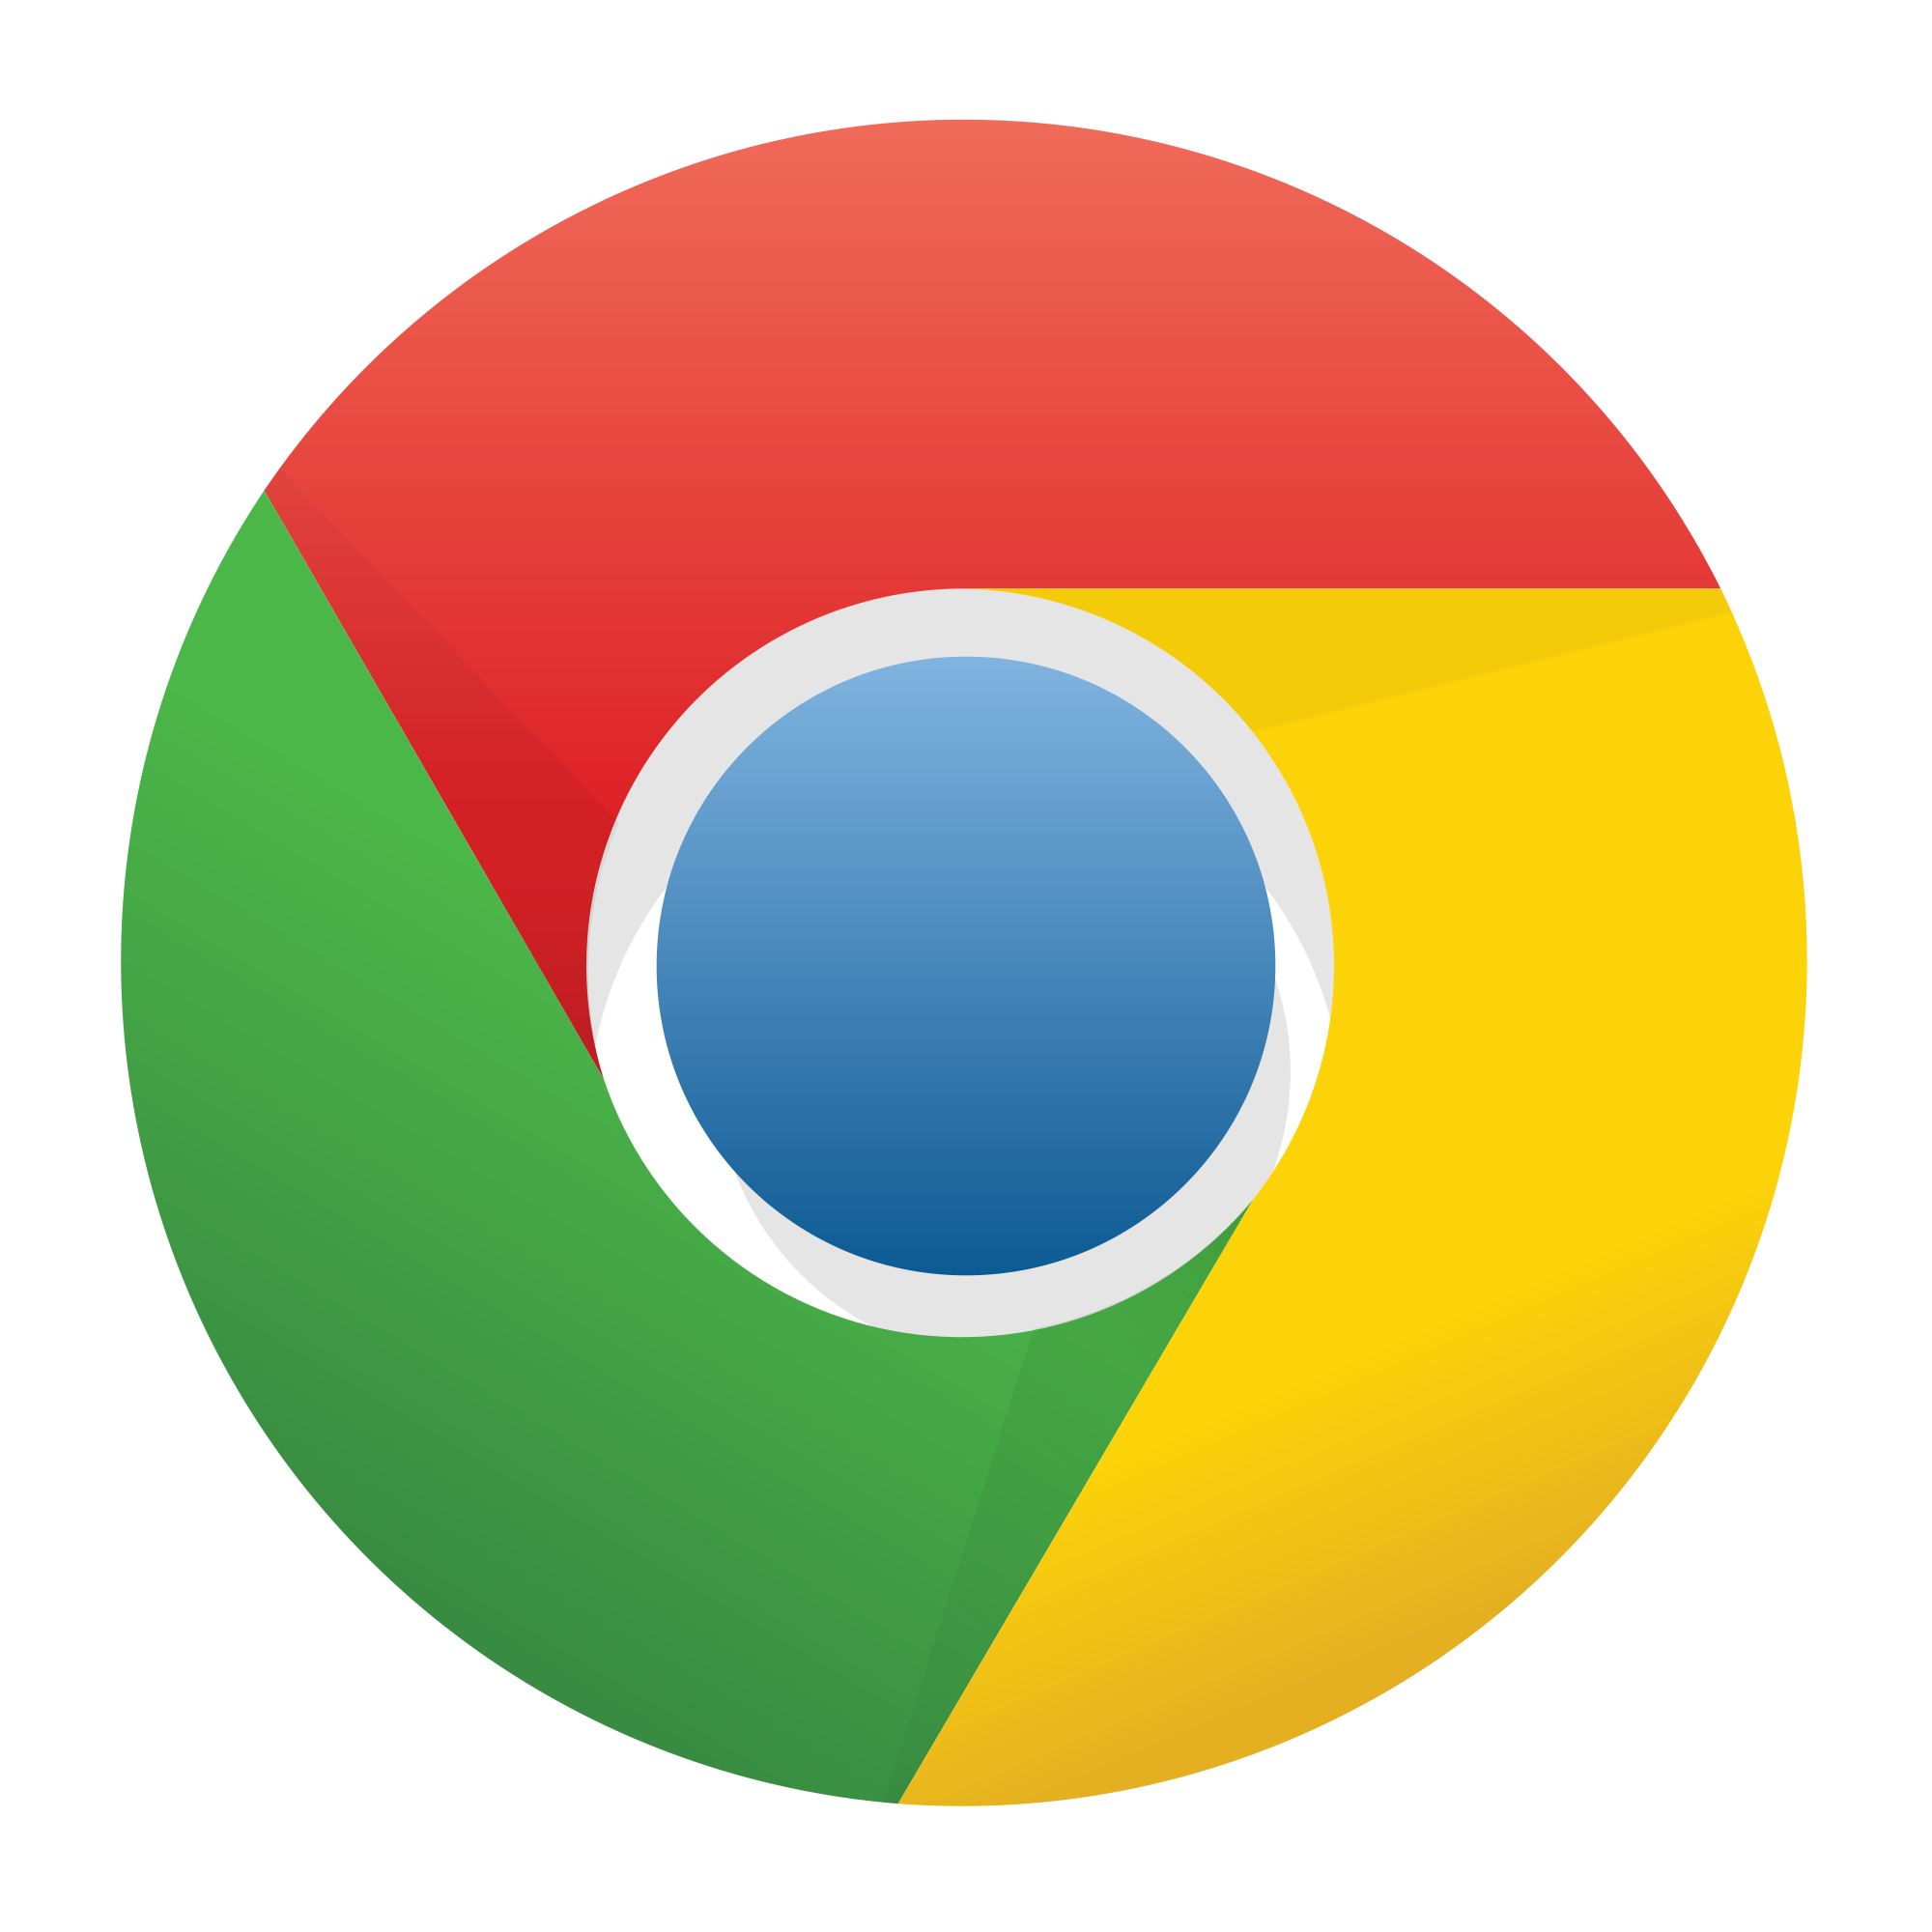 Google Chrome Images | FemaleCelebrity